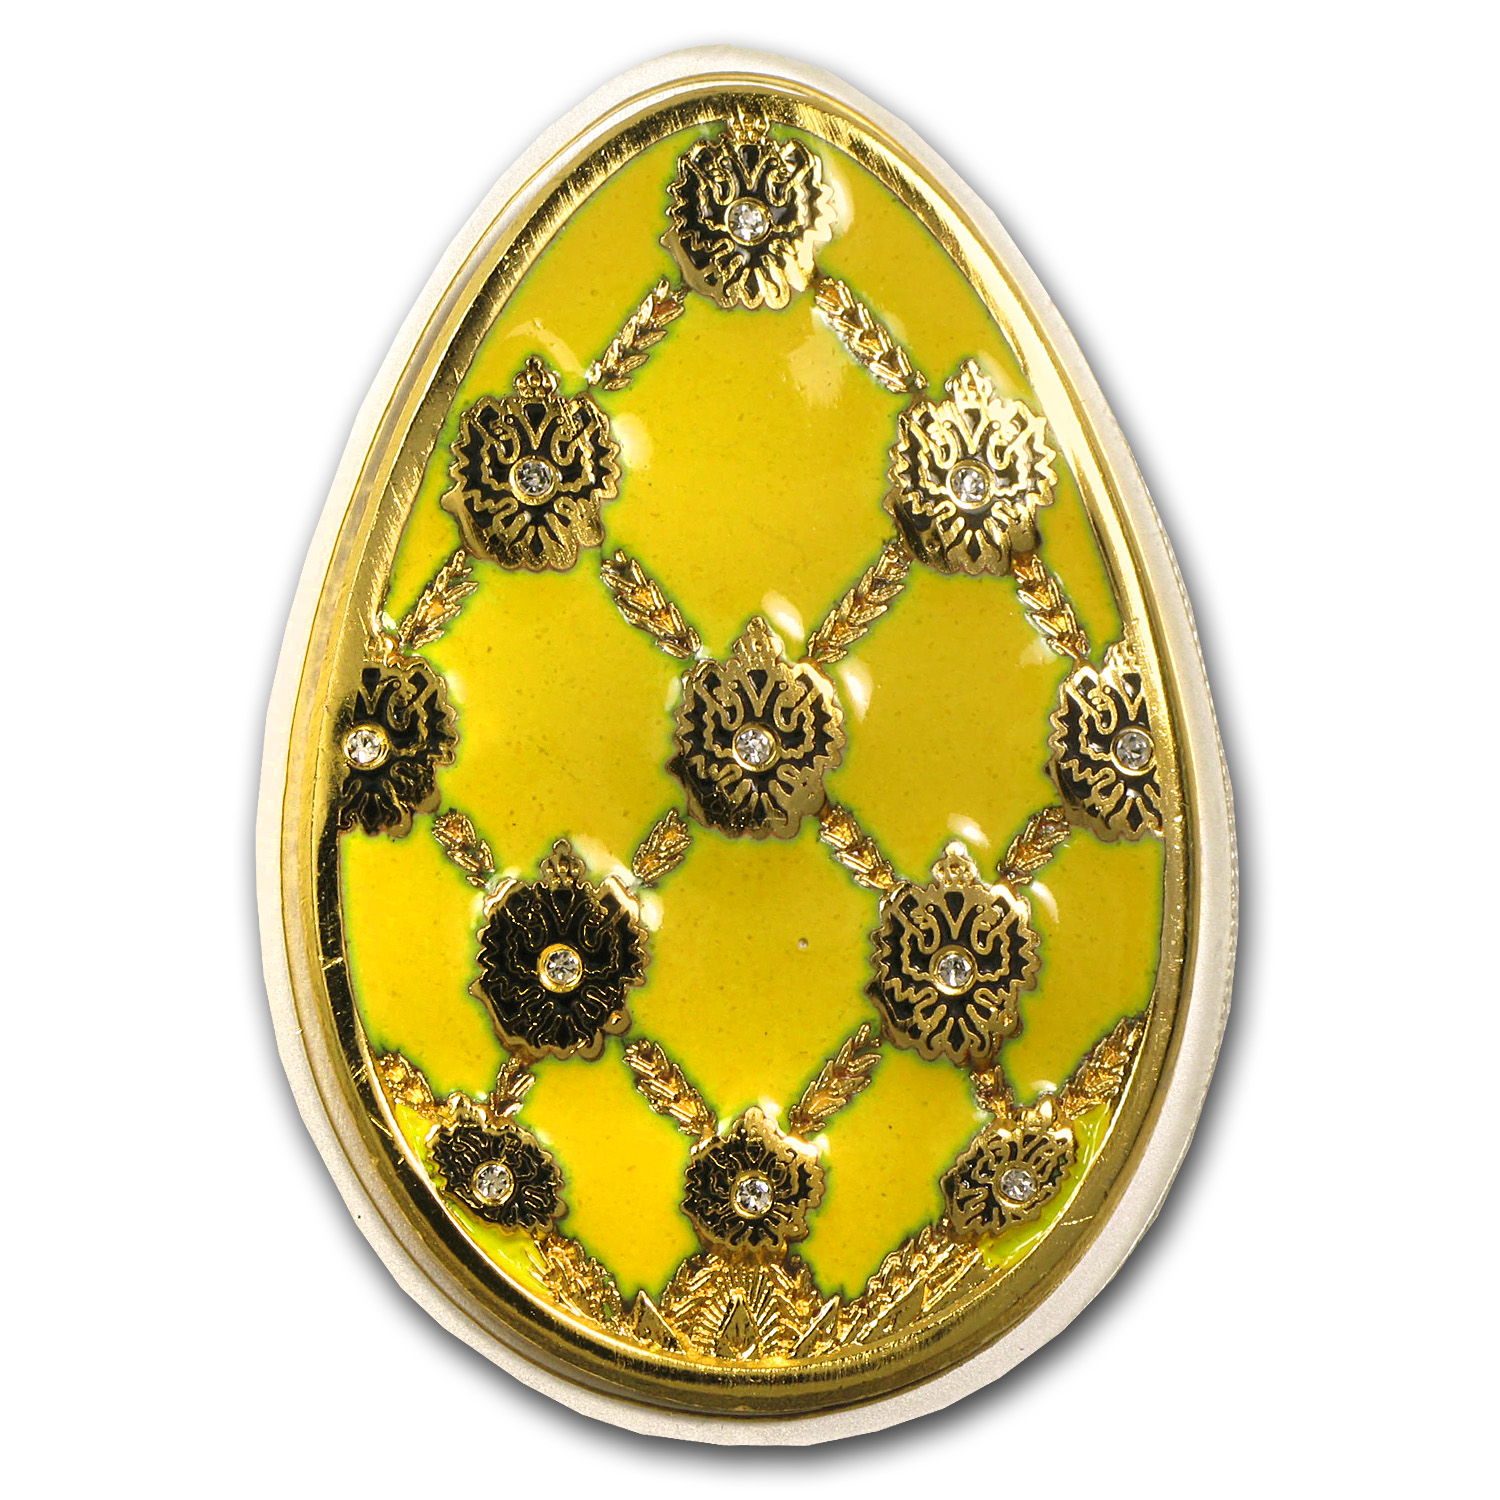 2010 Cook Islands Proof Silver Imperial Egg in Cloisonné Yellow